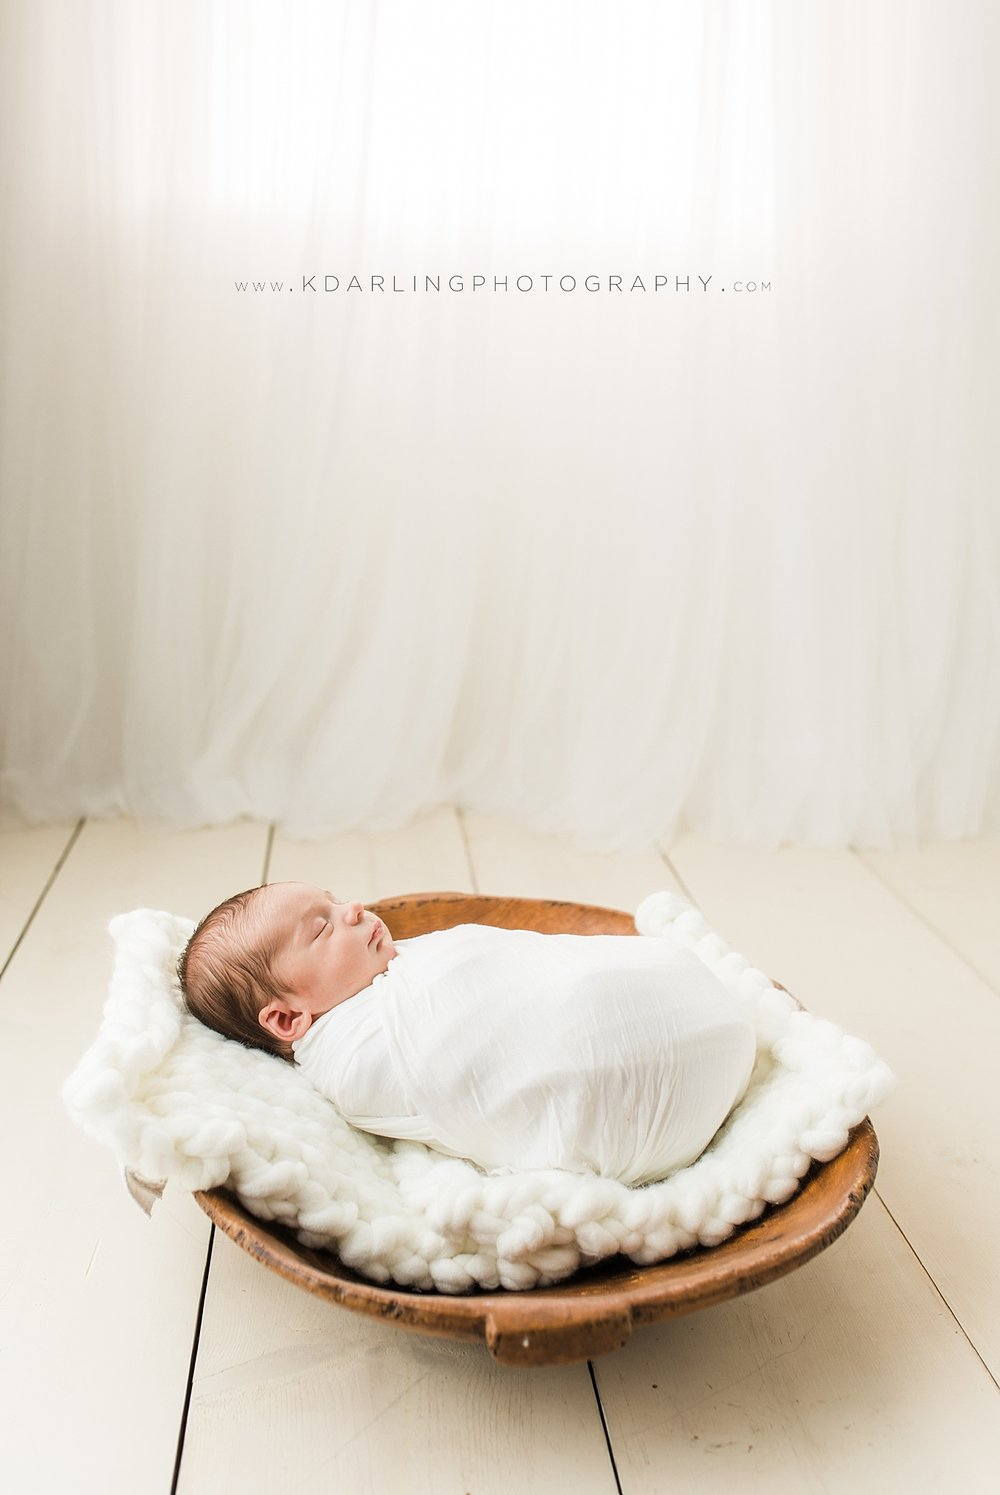 Newborn baby wrapped in white on wood floor